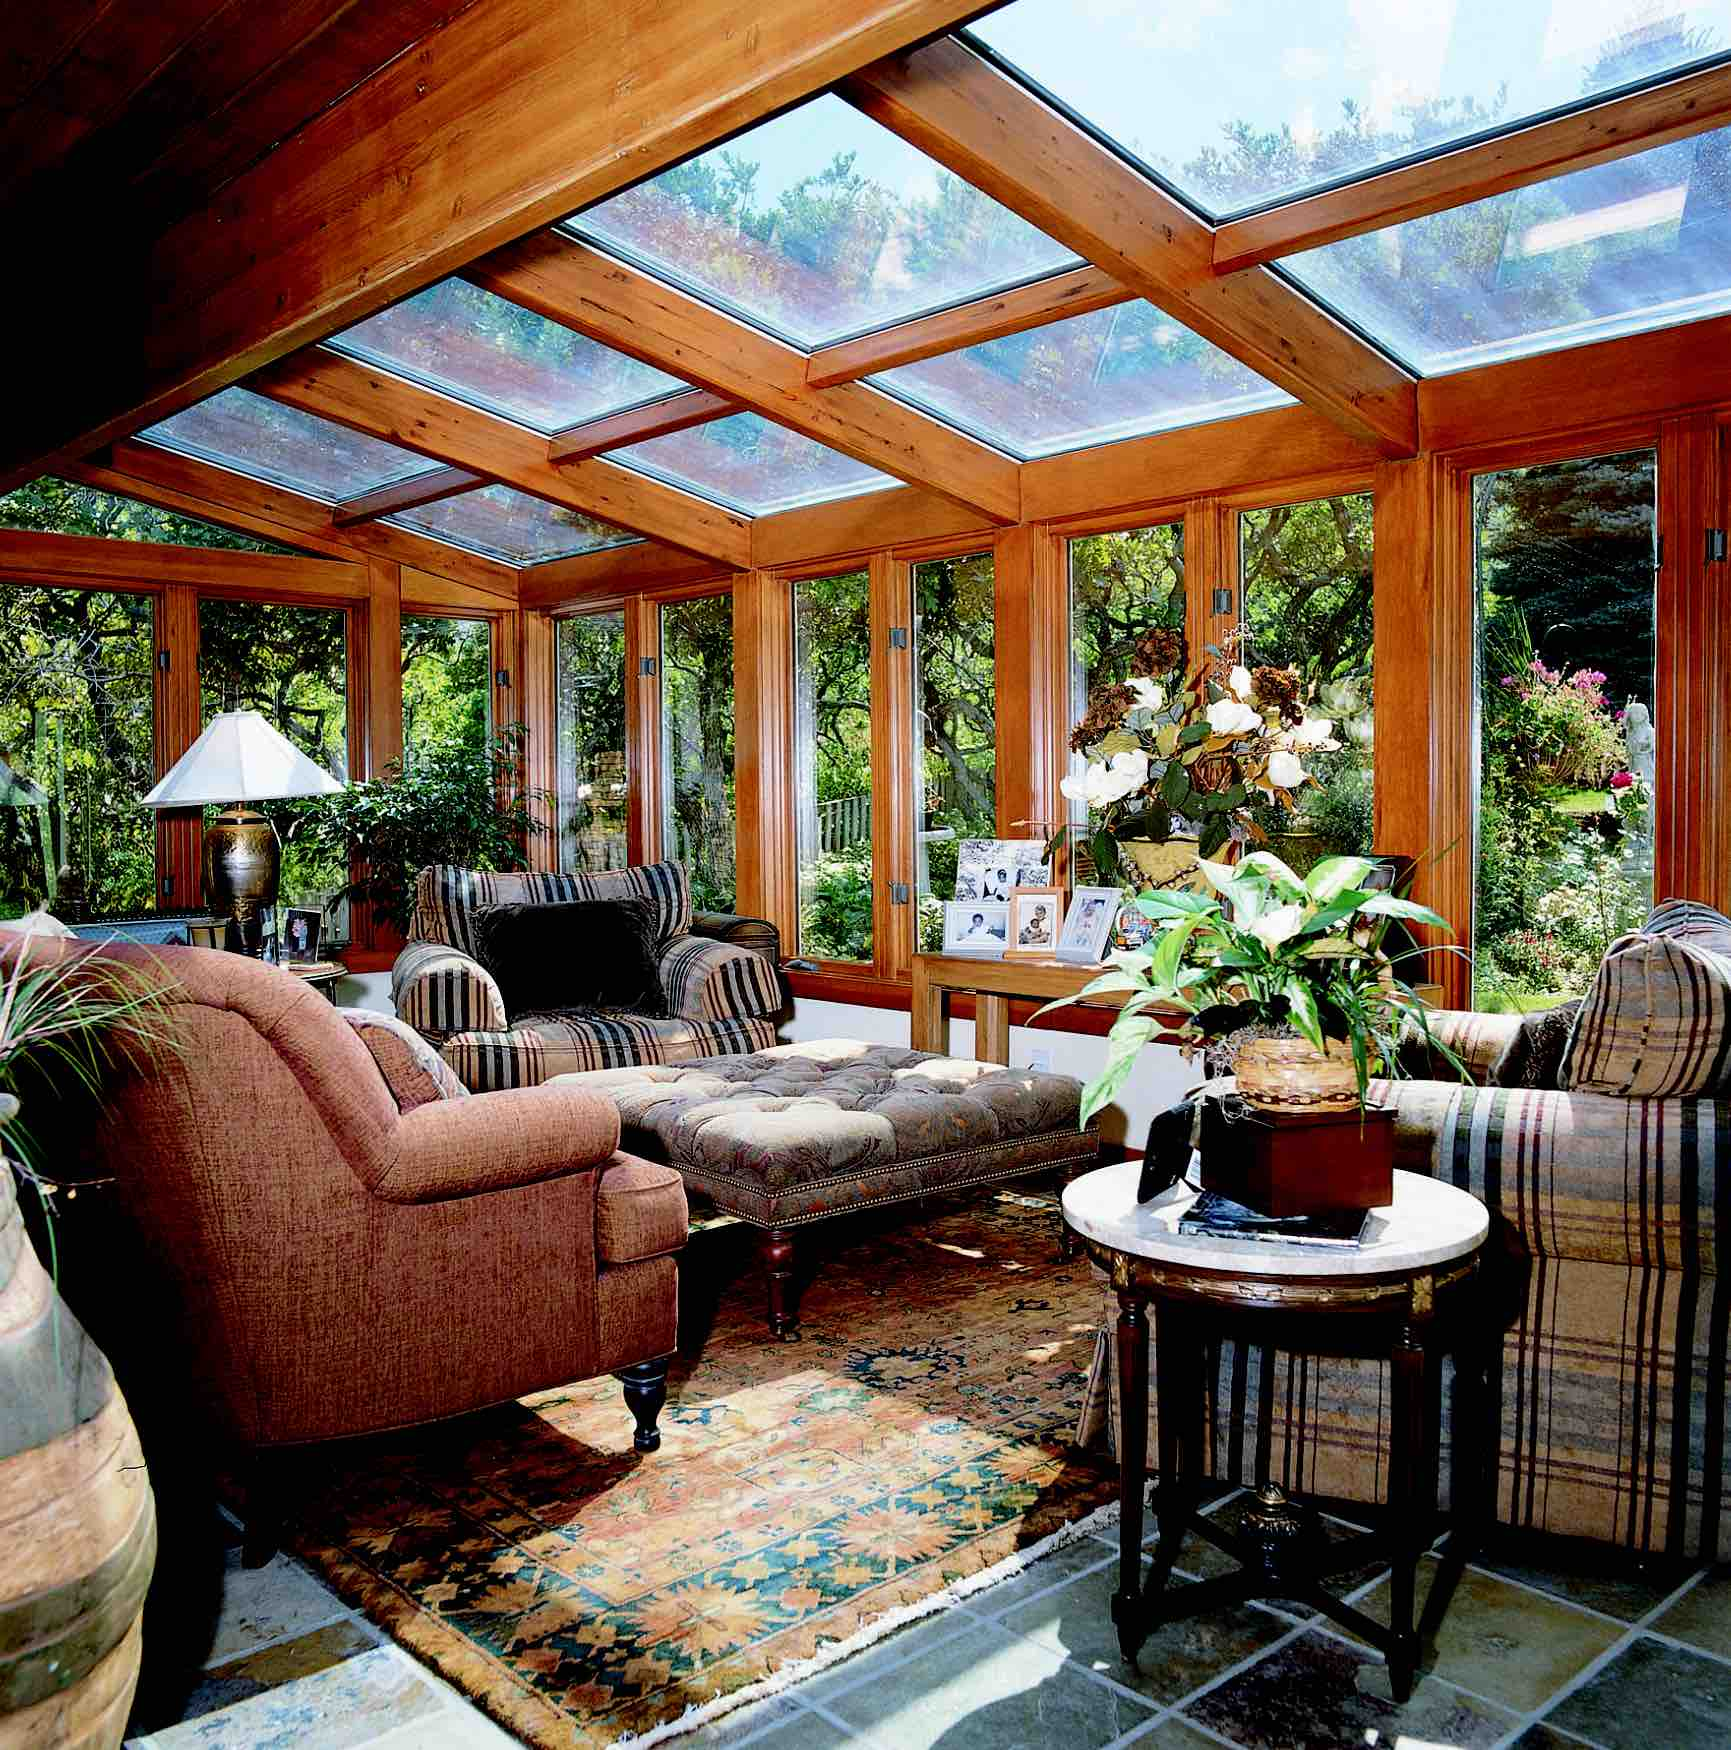 Sunrooms four seasons distributor budget glass nanaimo bc for Four season room